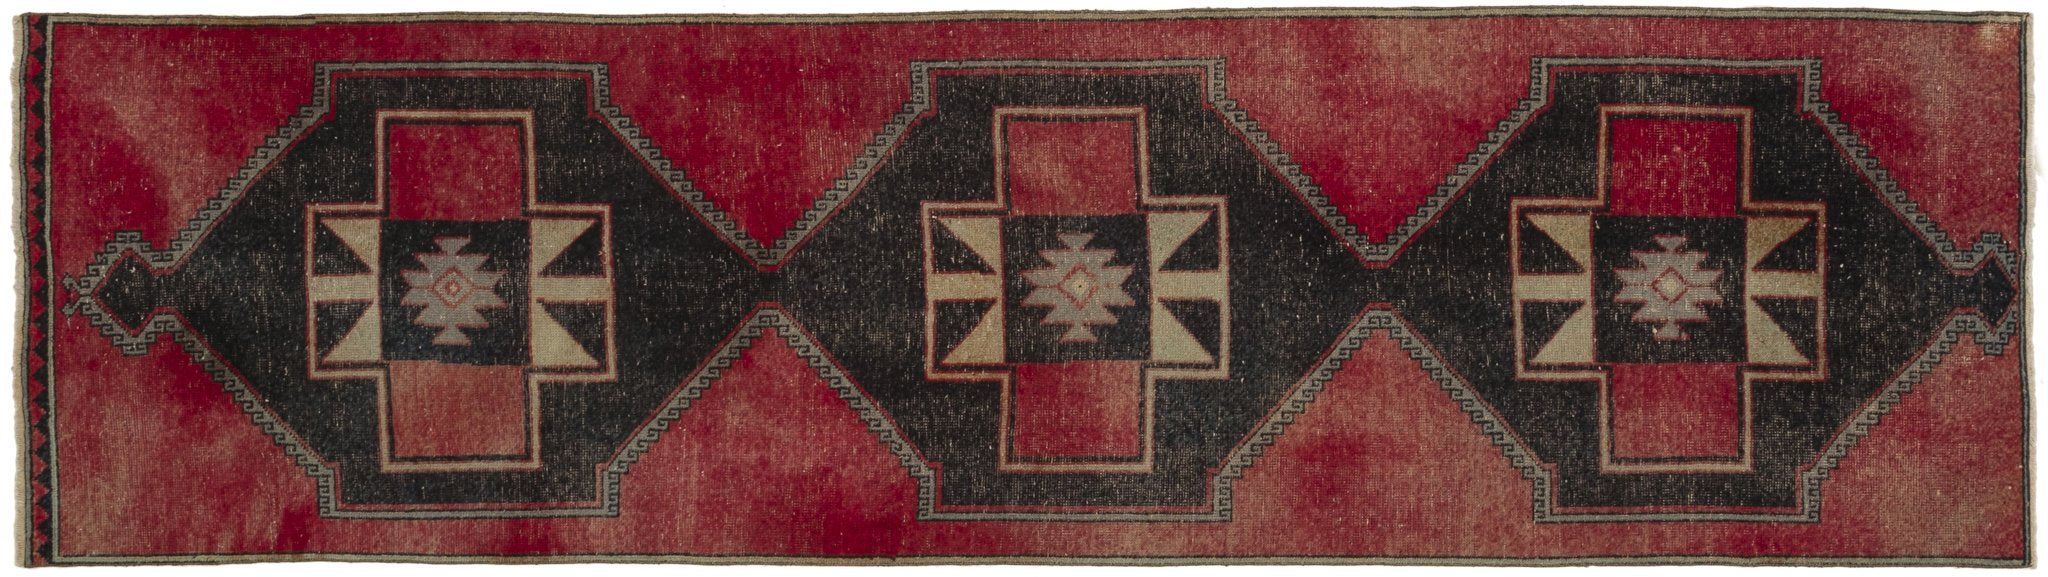 Vintage Turkish Runner Rug Channa